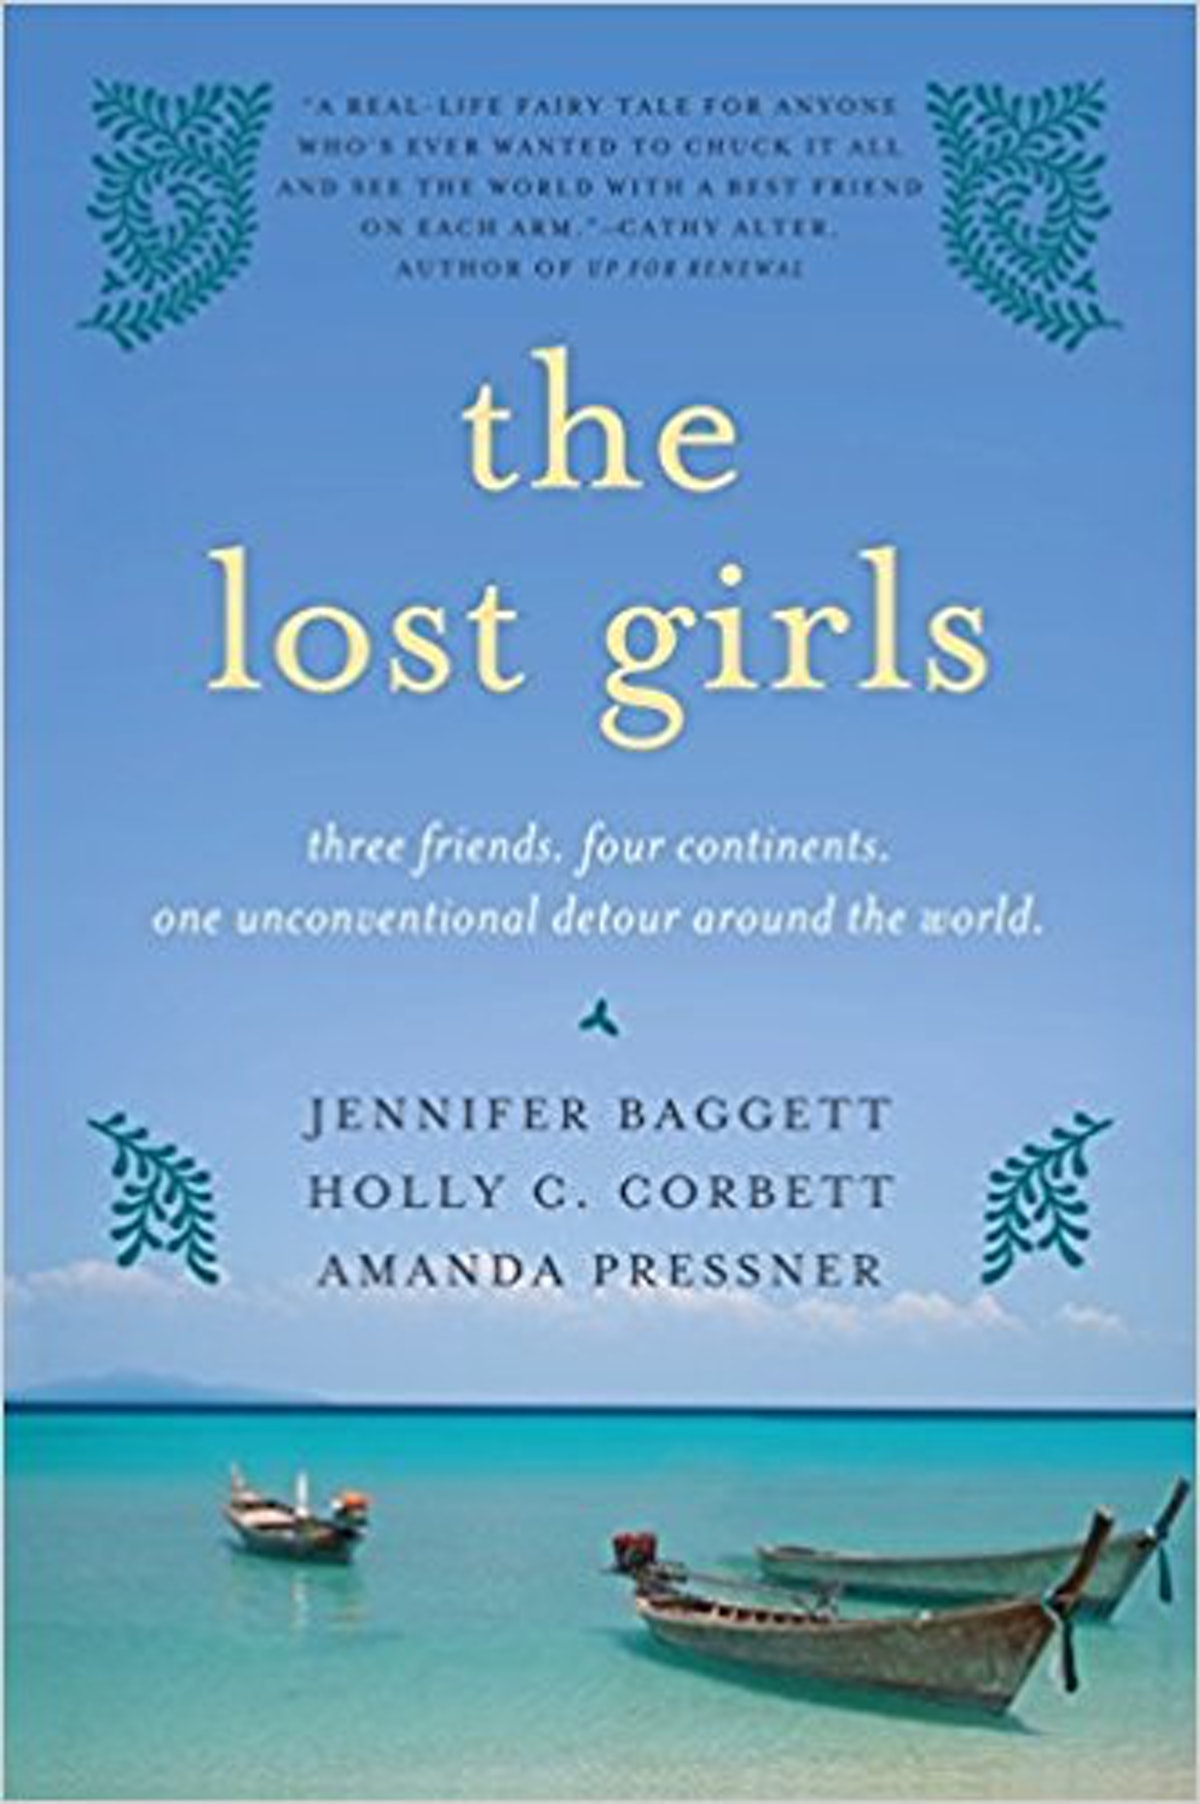 The Lost Girls:Three Friends. Four Continents. One Unconventional Detour Around the World.